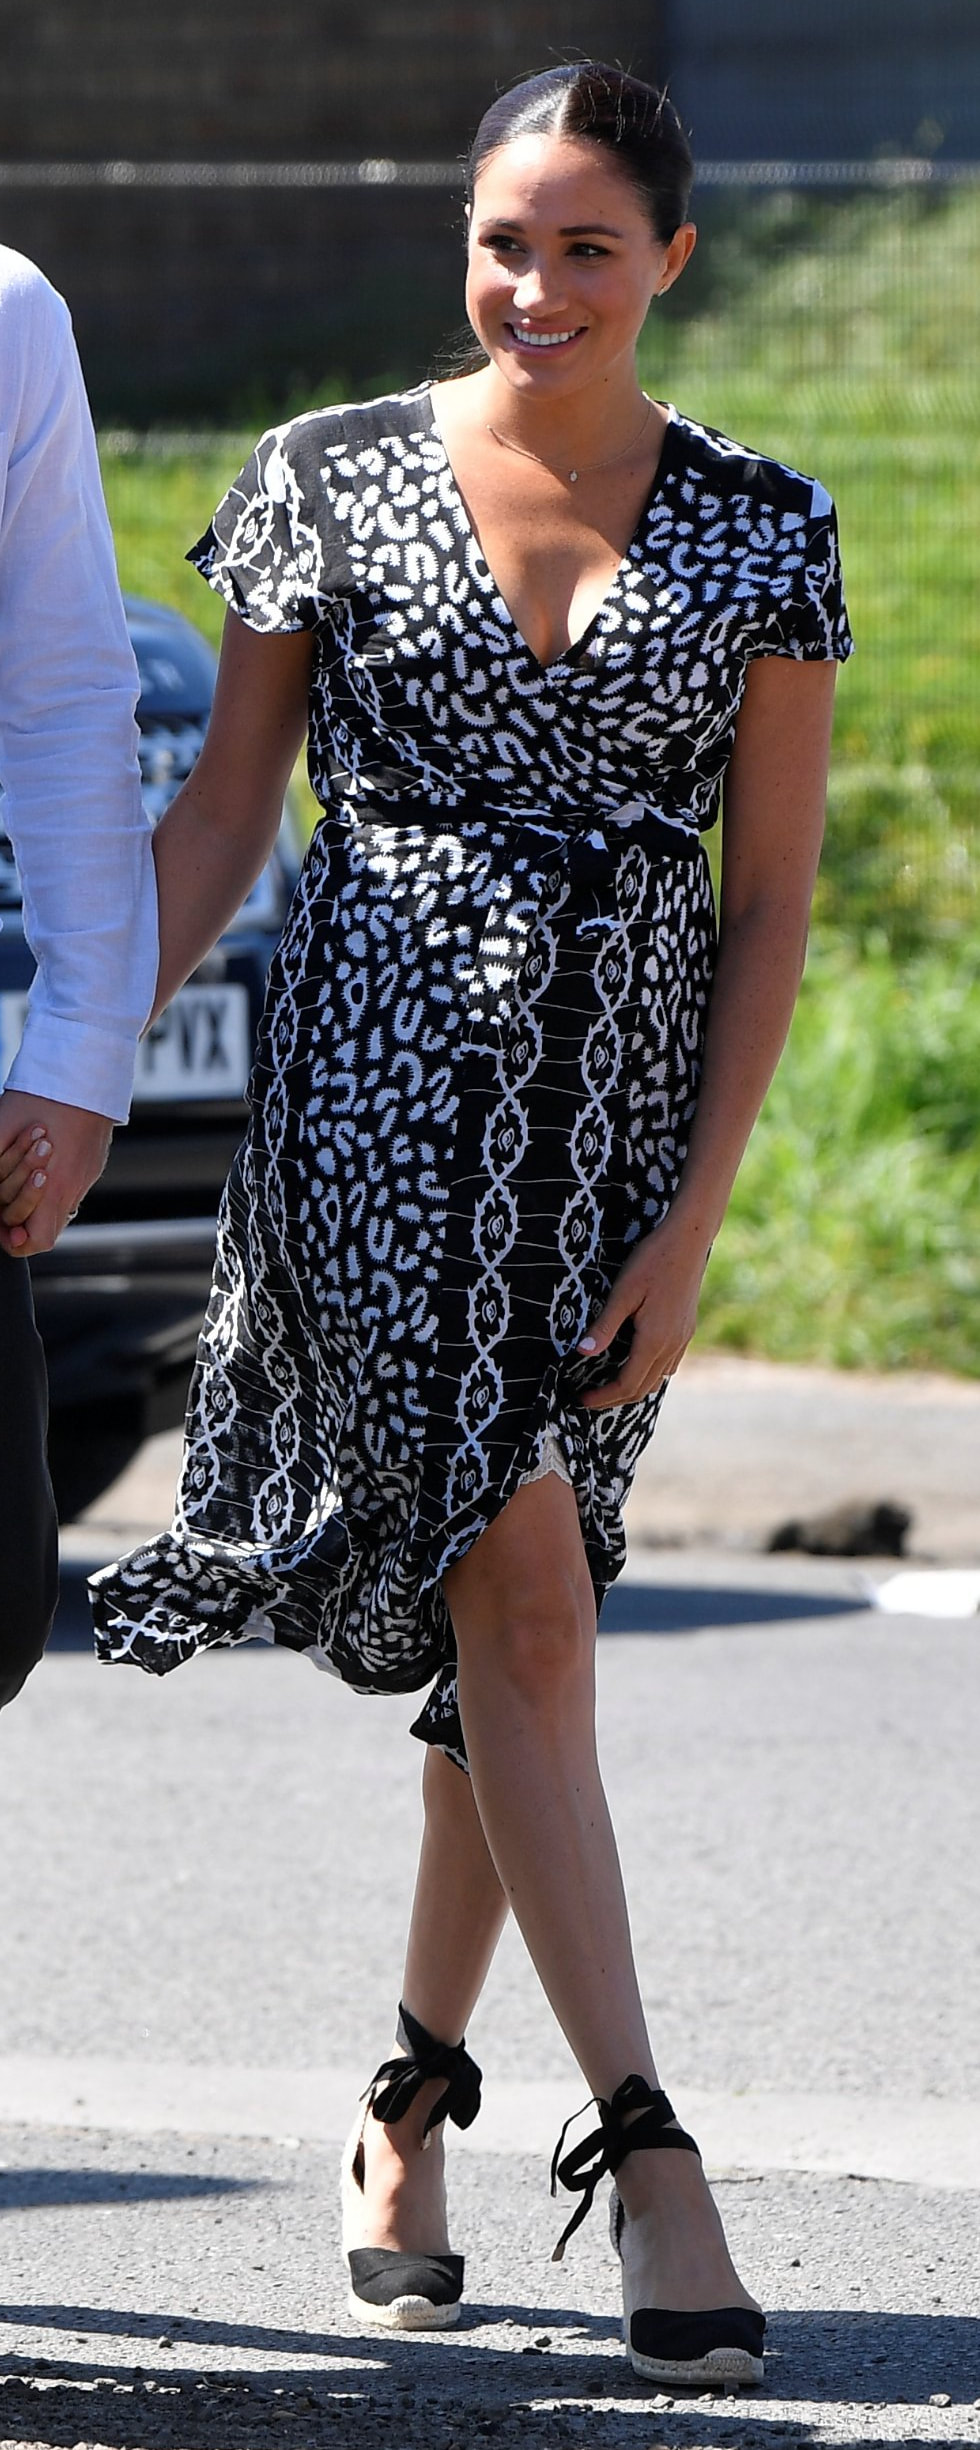 Mayamiko Dalitso Maxi Wrap Dress as seen on Meghan Markle, the Duchess of Sussex